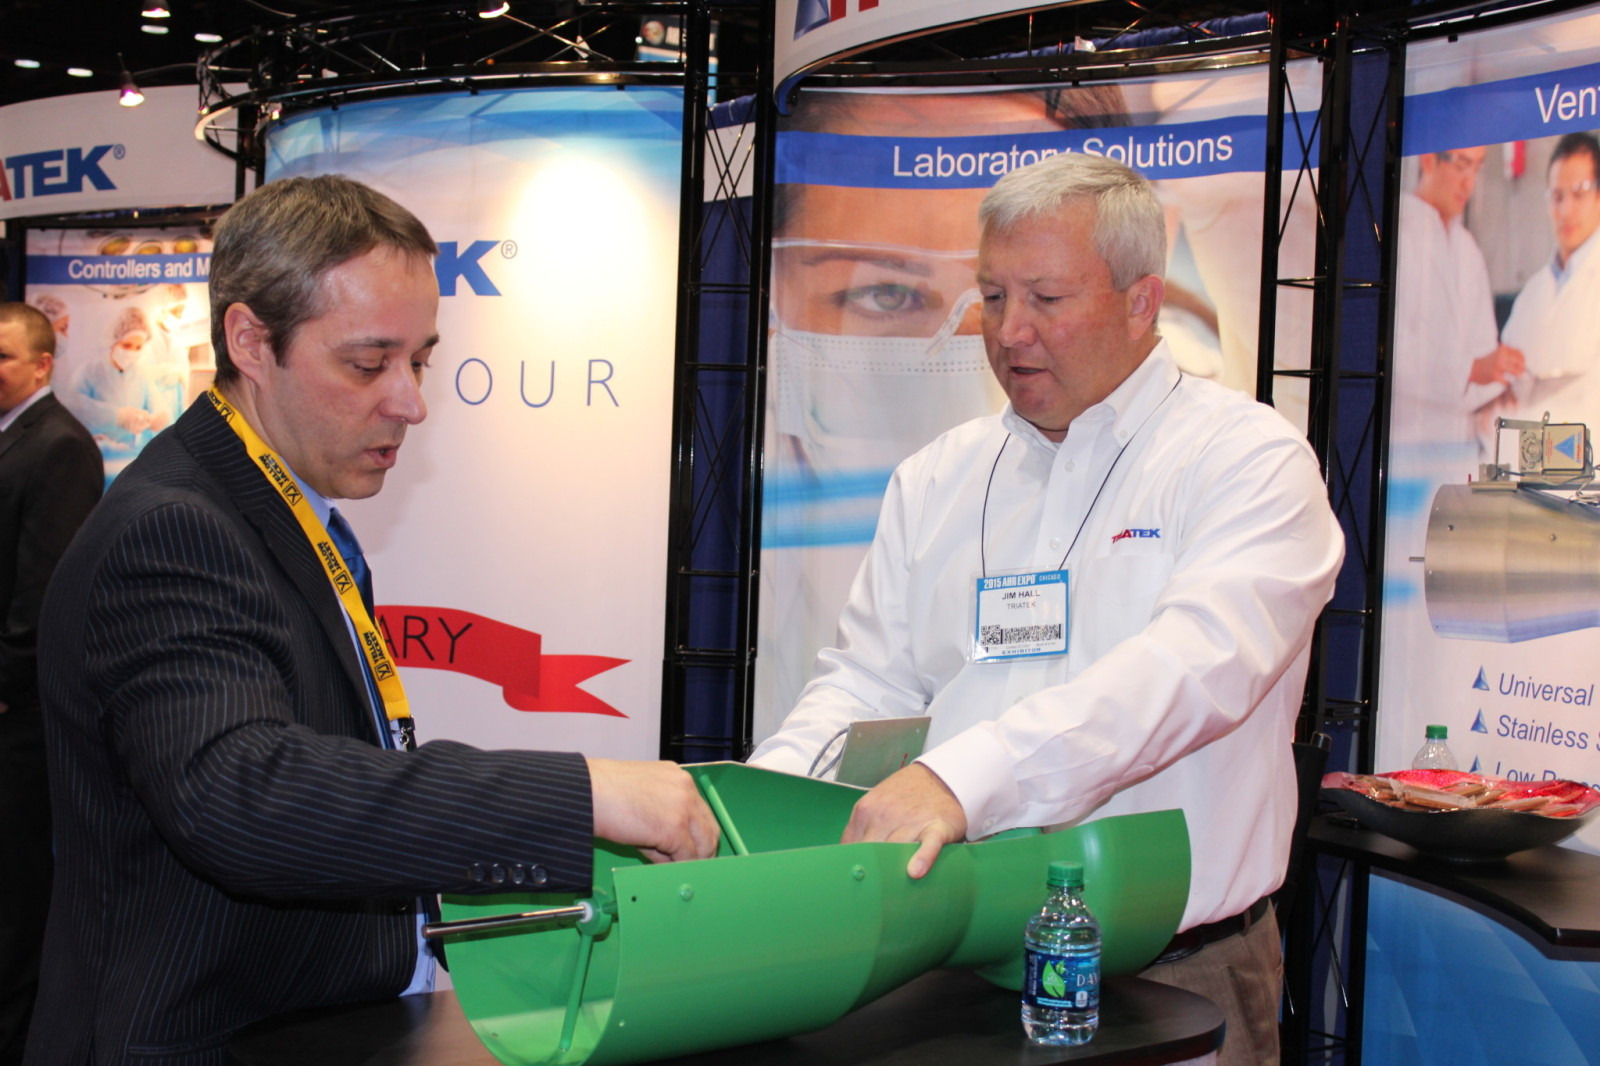 Jim Hall showing off Triatek's Venturi Valve